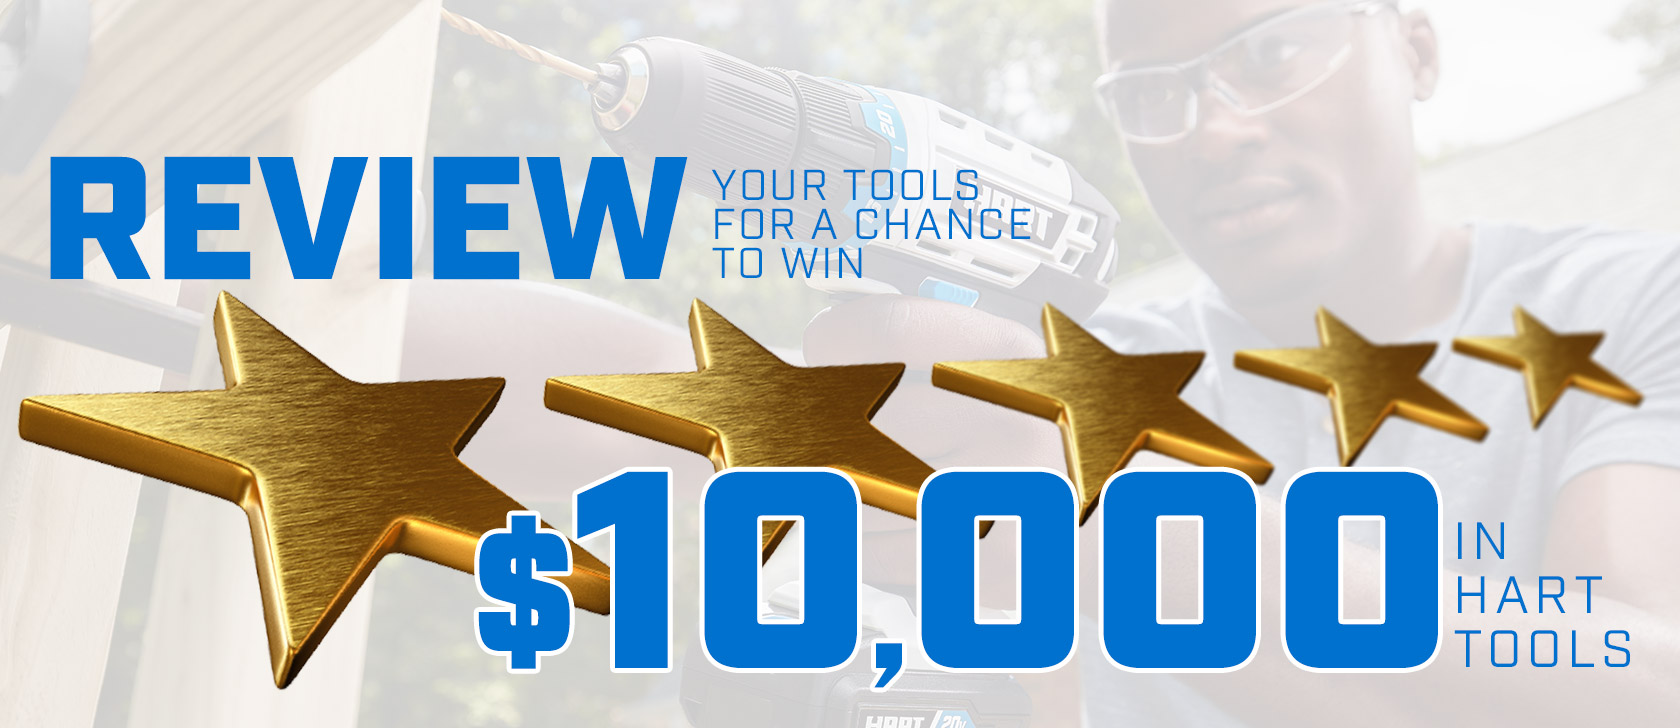 Graphic: Review HART Tools for a chance to Win $10000 in HART Tools